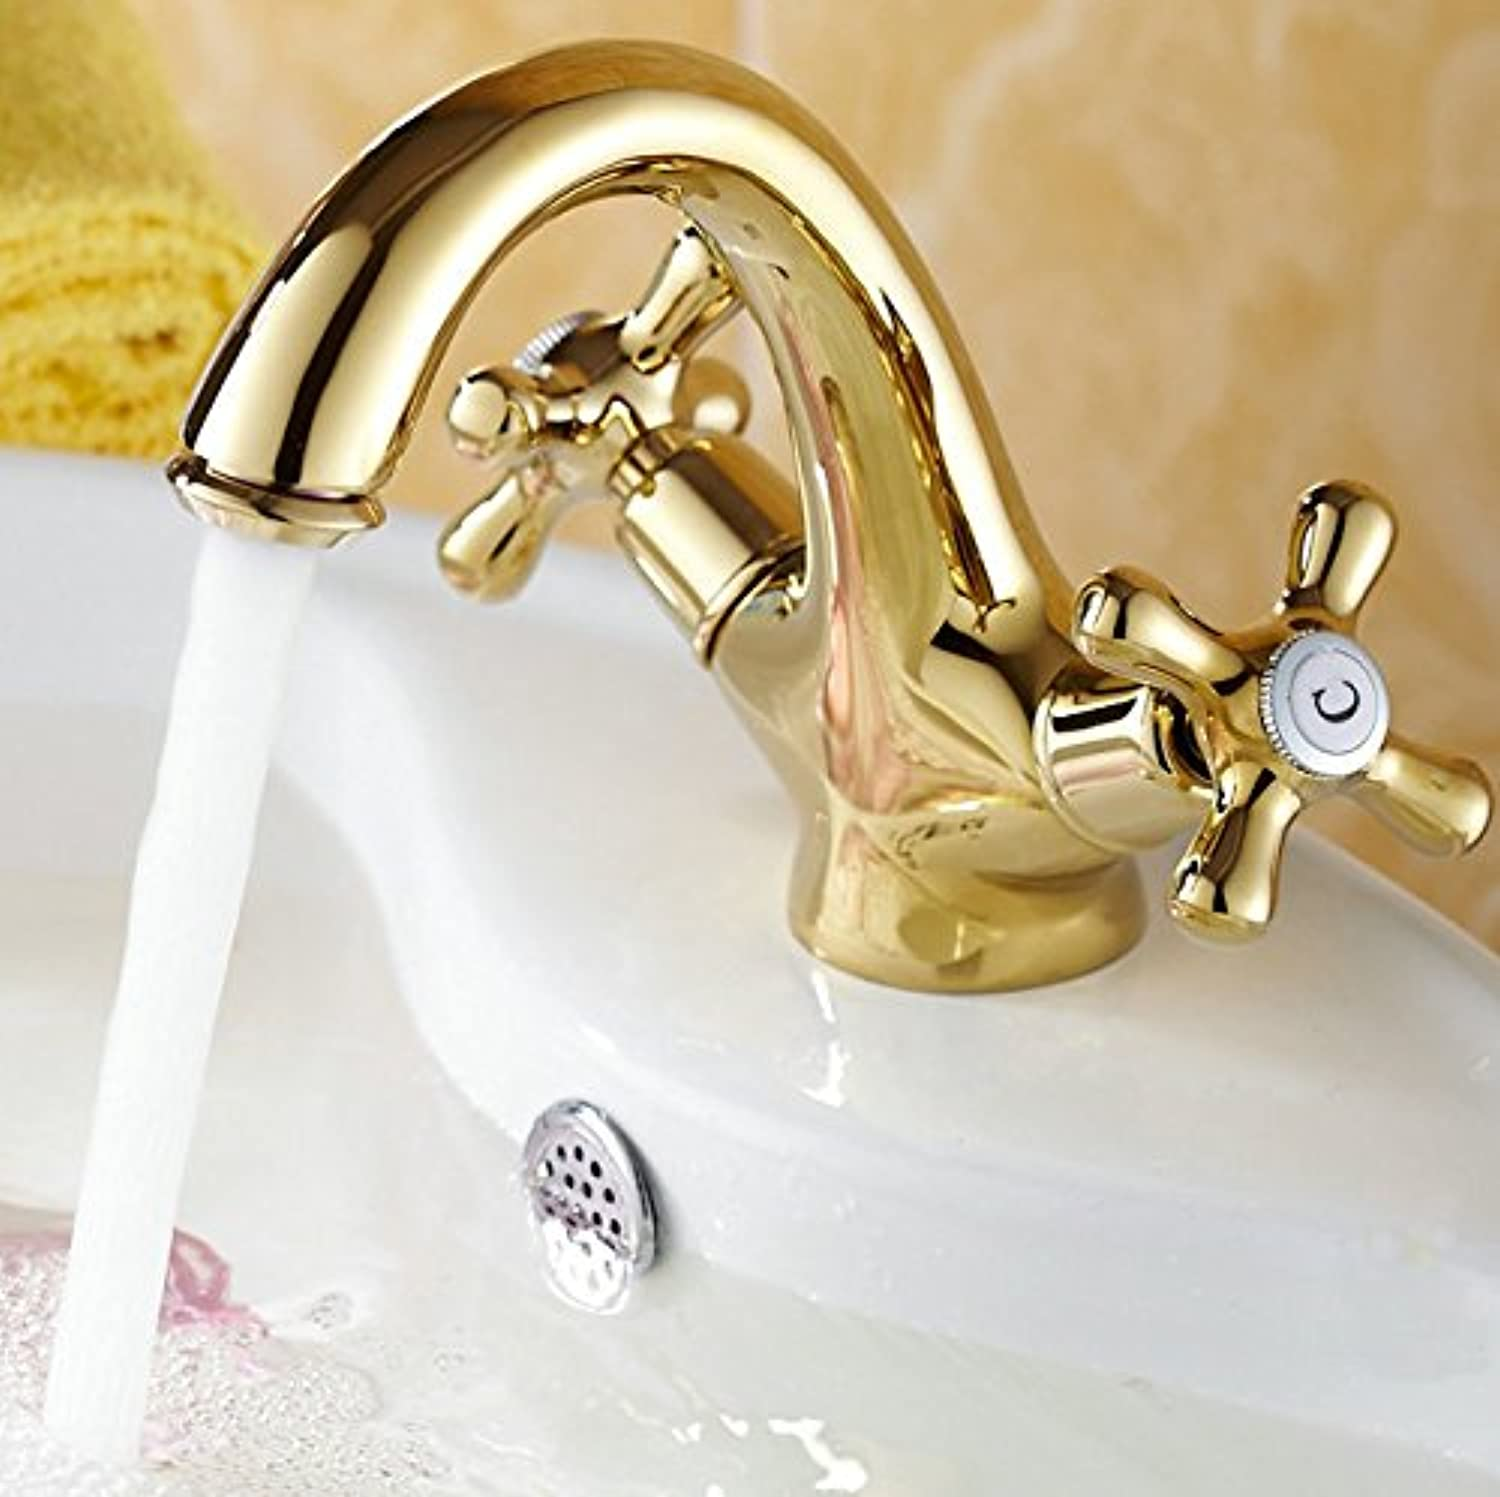 U-Enjoy Classic Dual Handle Top Quality Dual Holder 2Kg Ceramic Time-Limited Promotion Mixers Sink Mixer Tap Noble Gorgeous Faucet (Free Shipping)